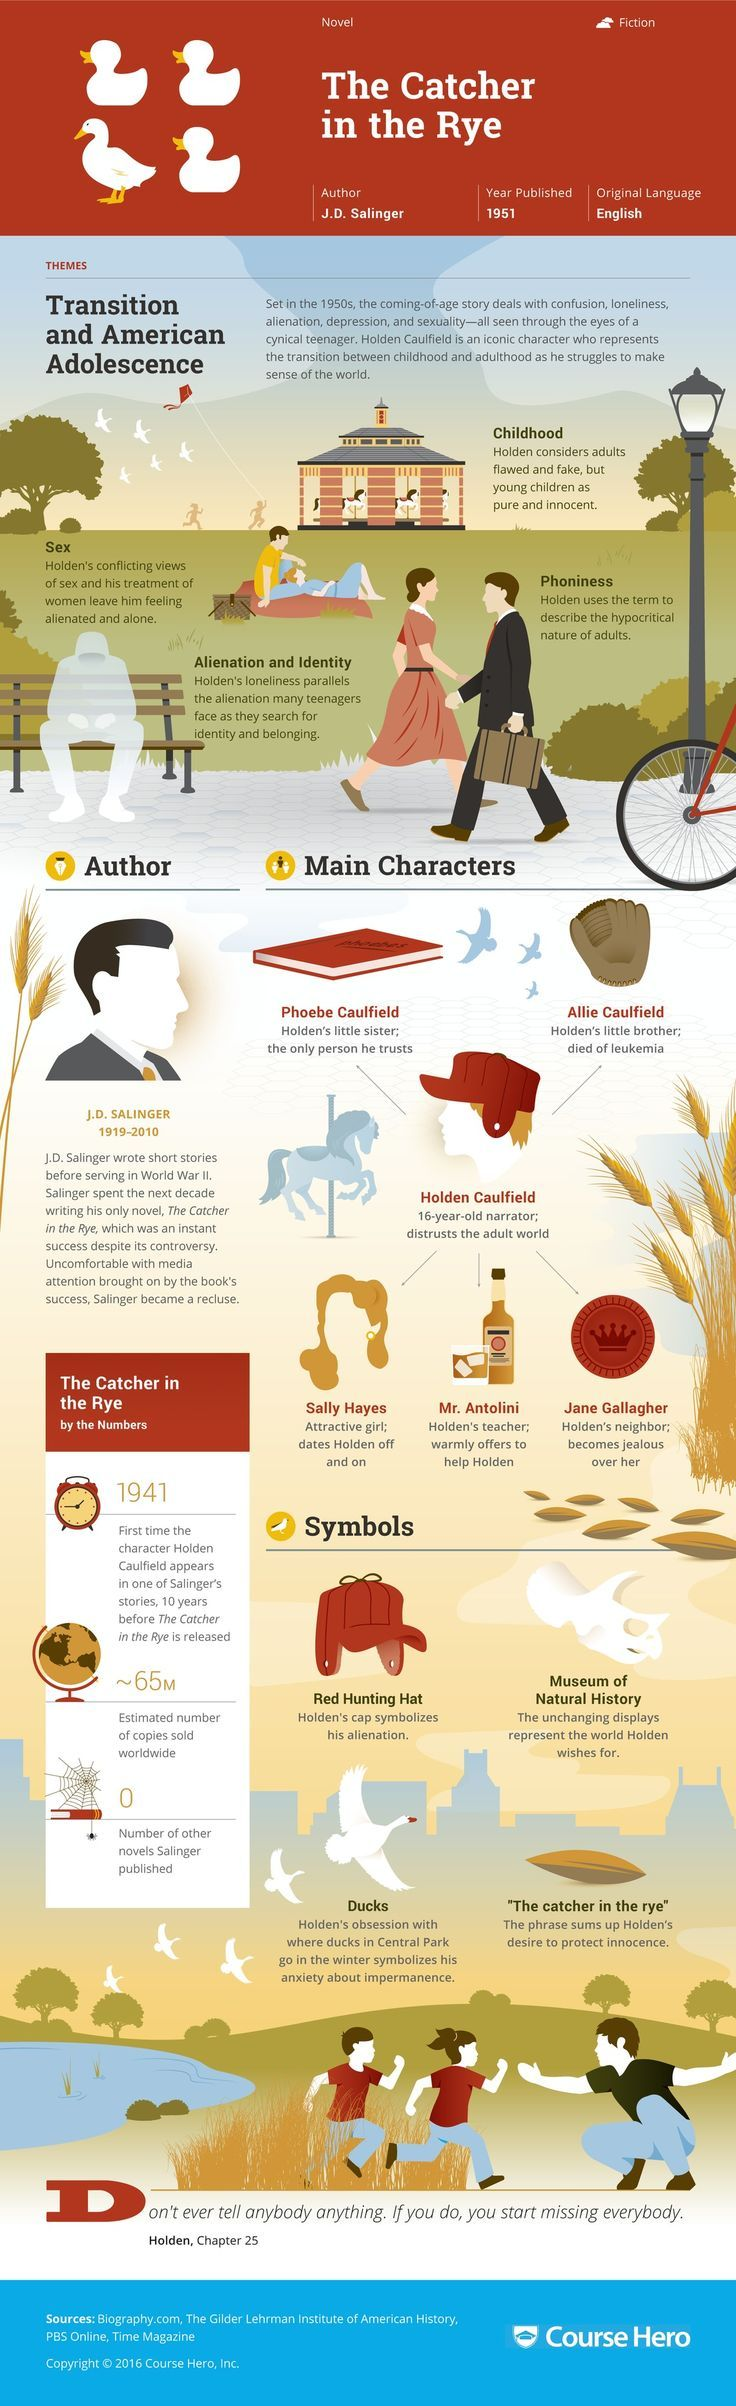 catcher in the rye short essay questions